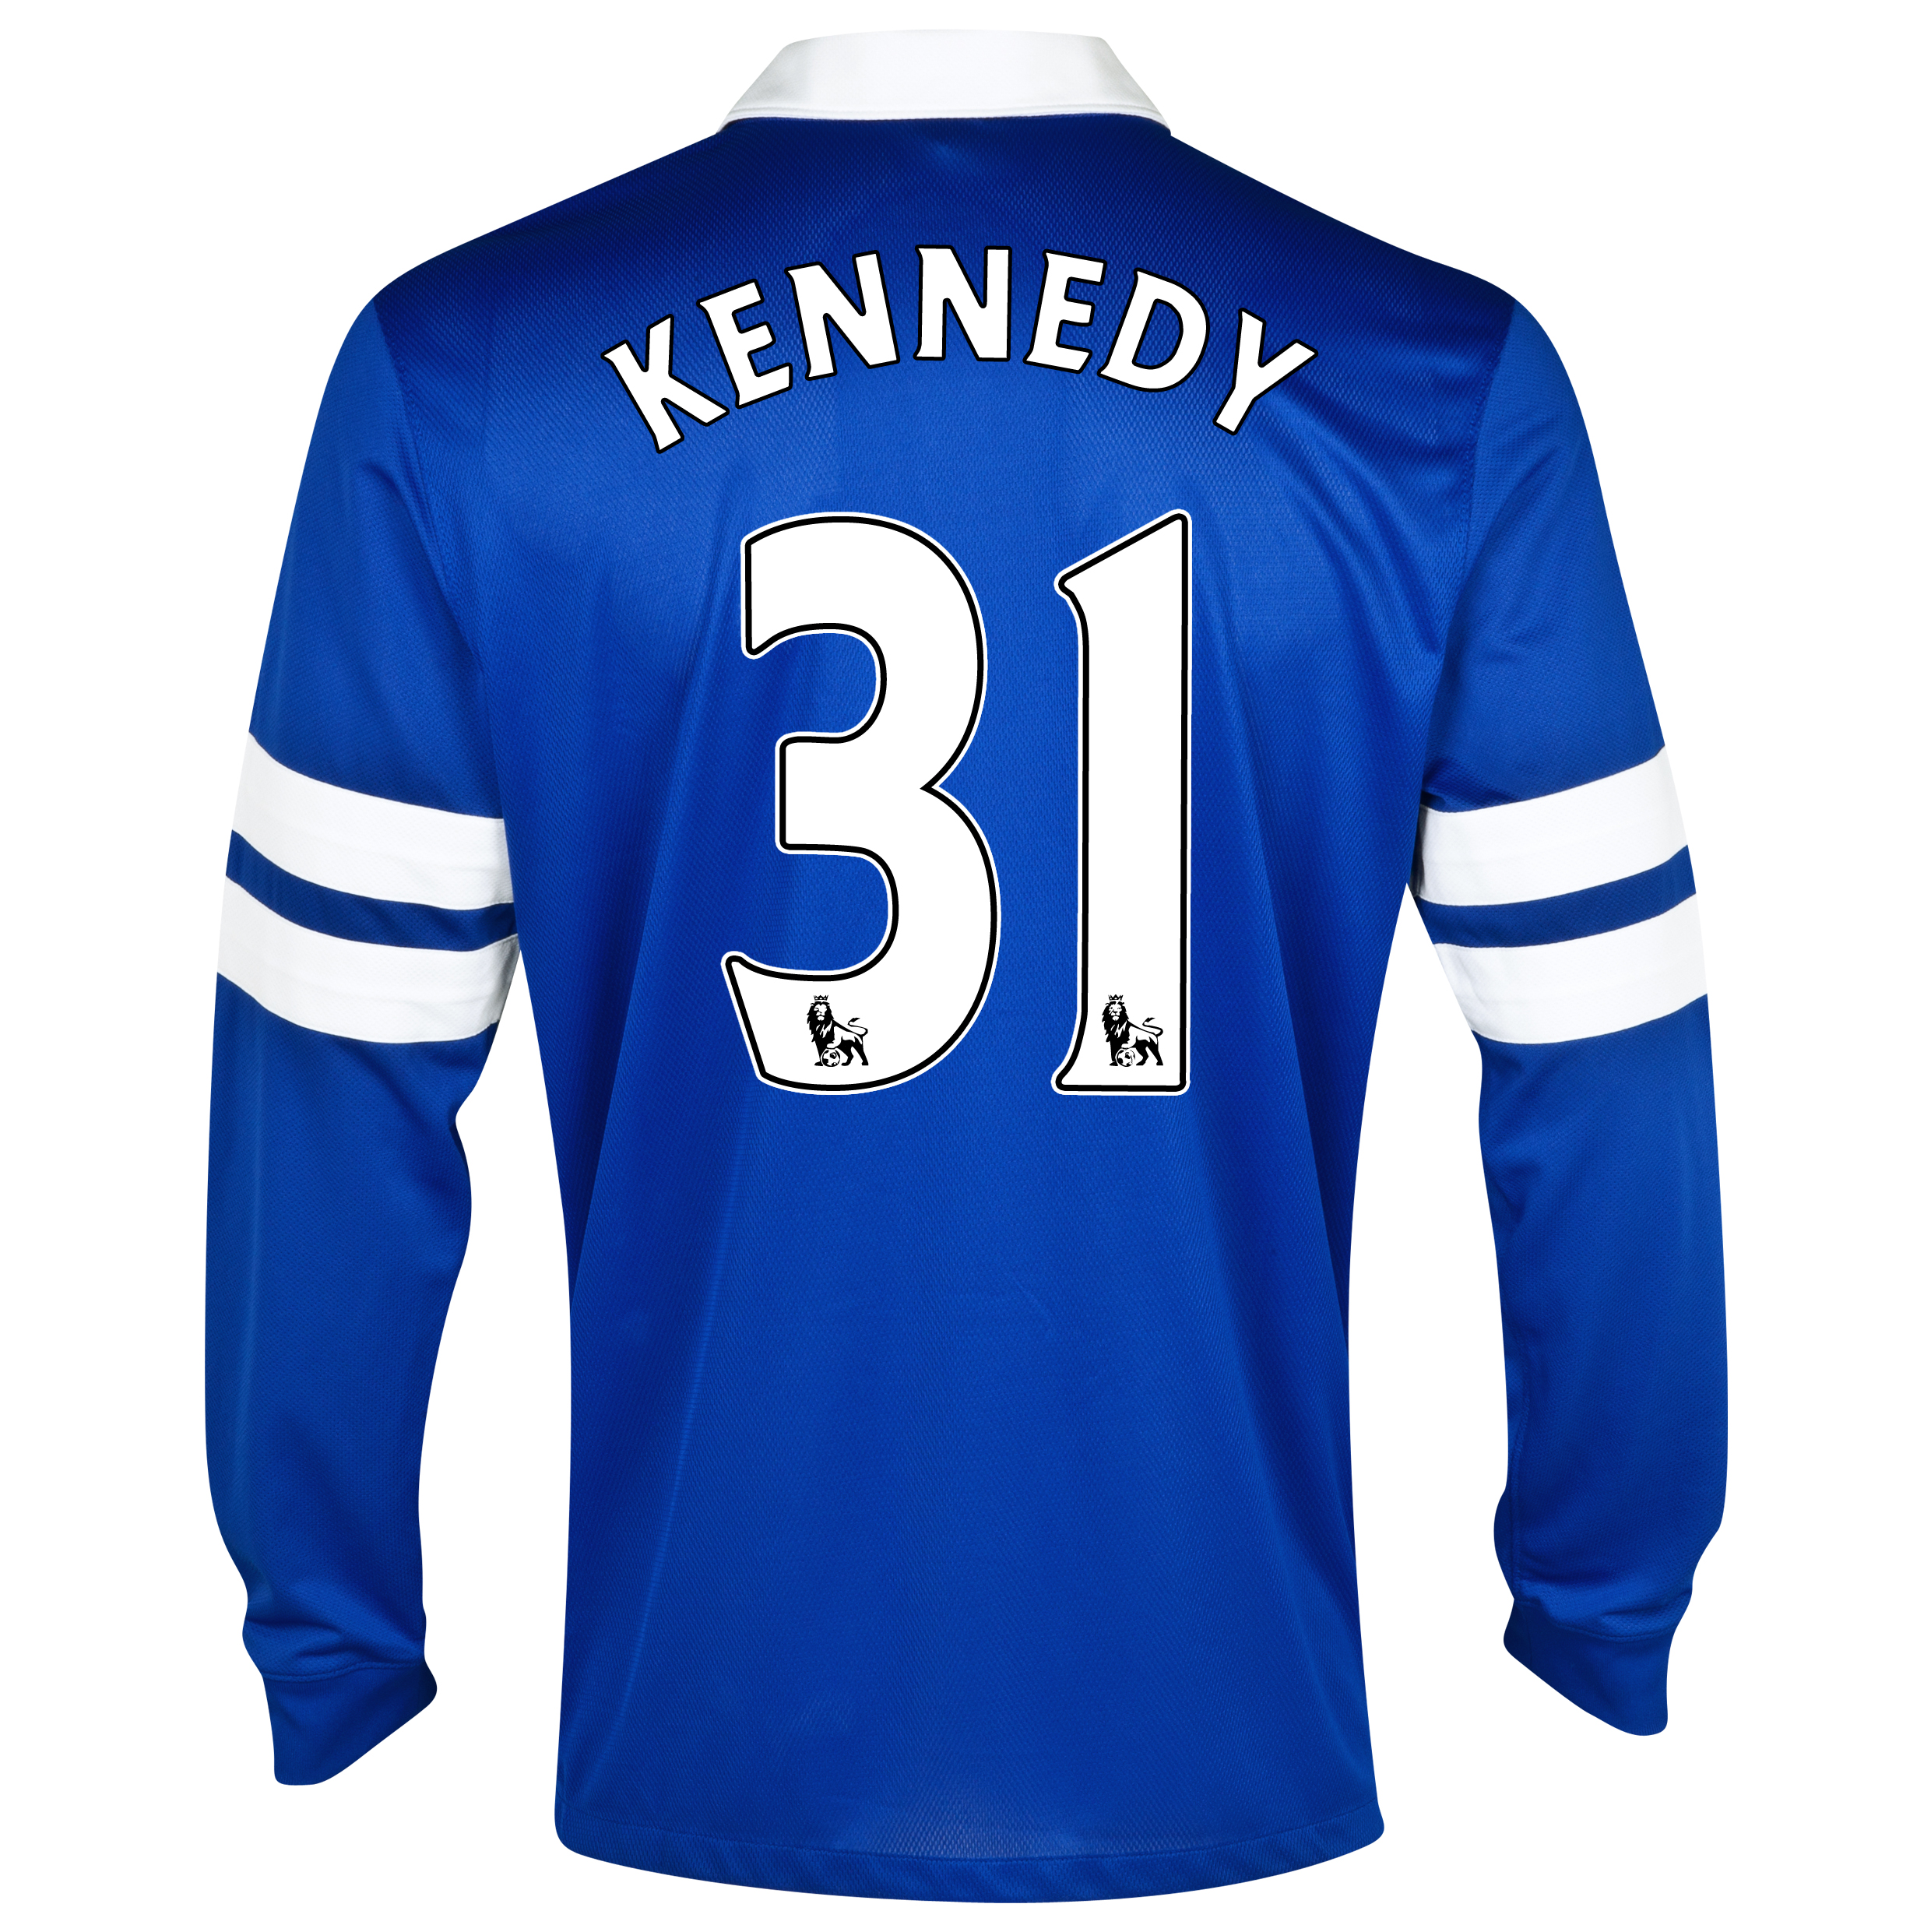 Everton Home Shirt 2013/14 - Junior - Long Sleeved Blue with Kennedy 31 printing